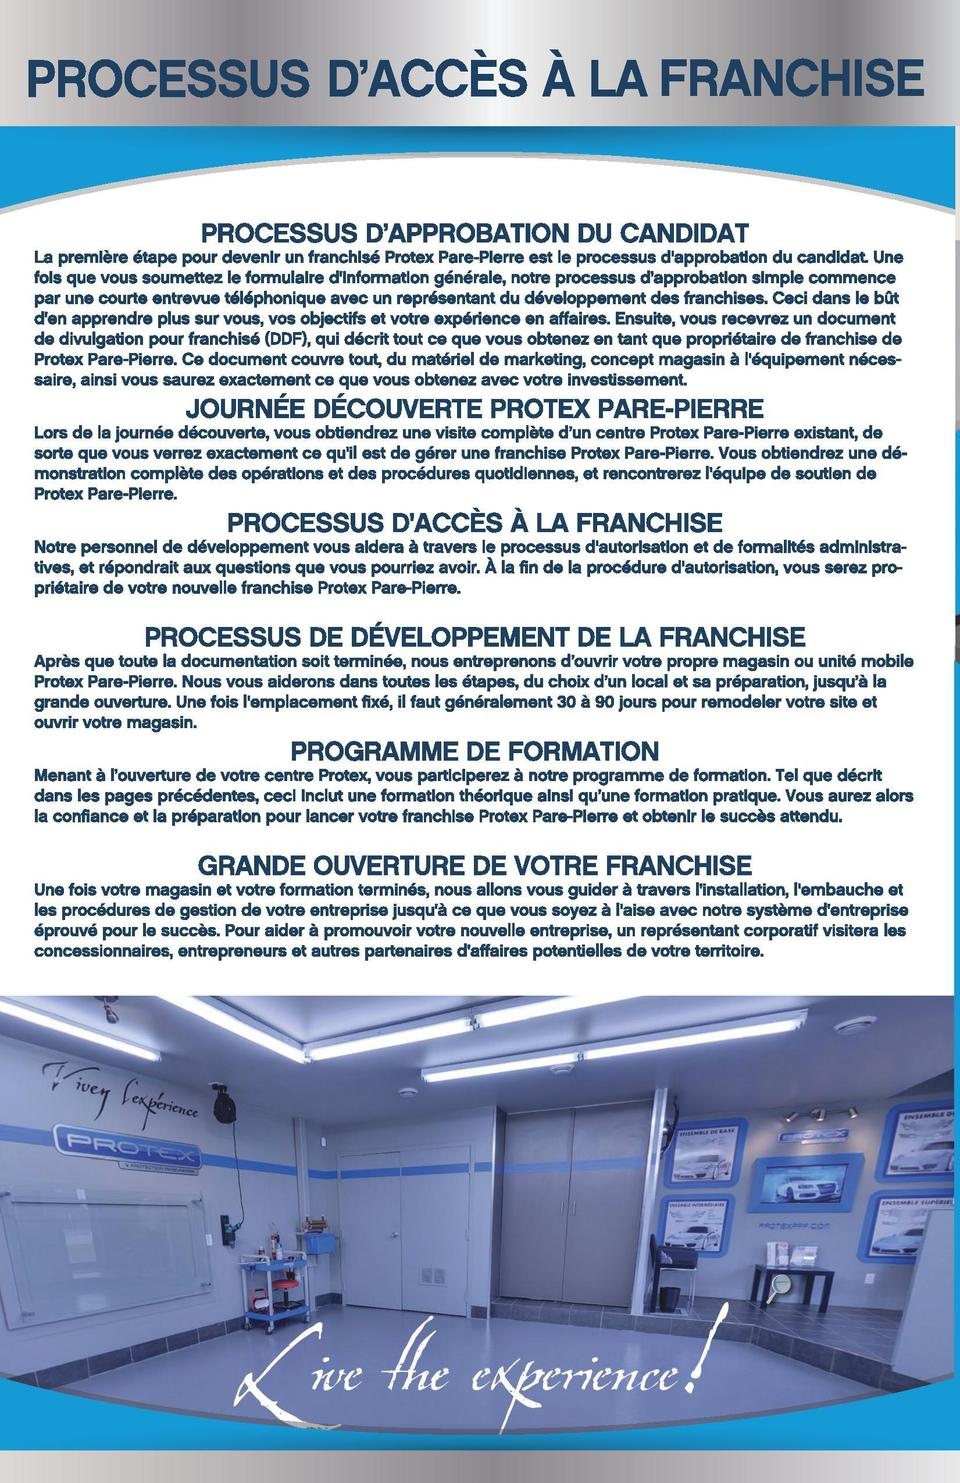 Protex Franchise_mode Cahier_FR.pdf  C  M  J  CM  MJ  CJ  CMJ  N  3  15-09-29  15 40